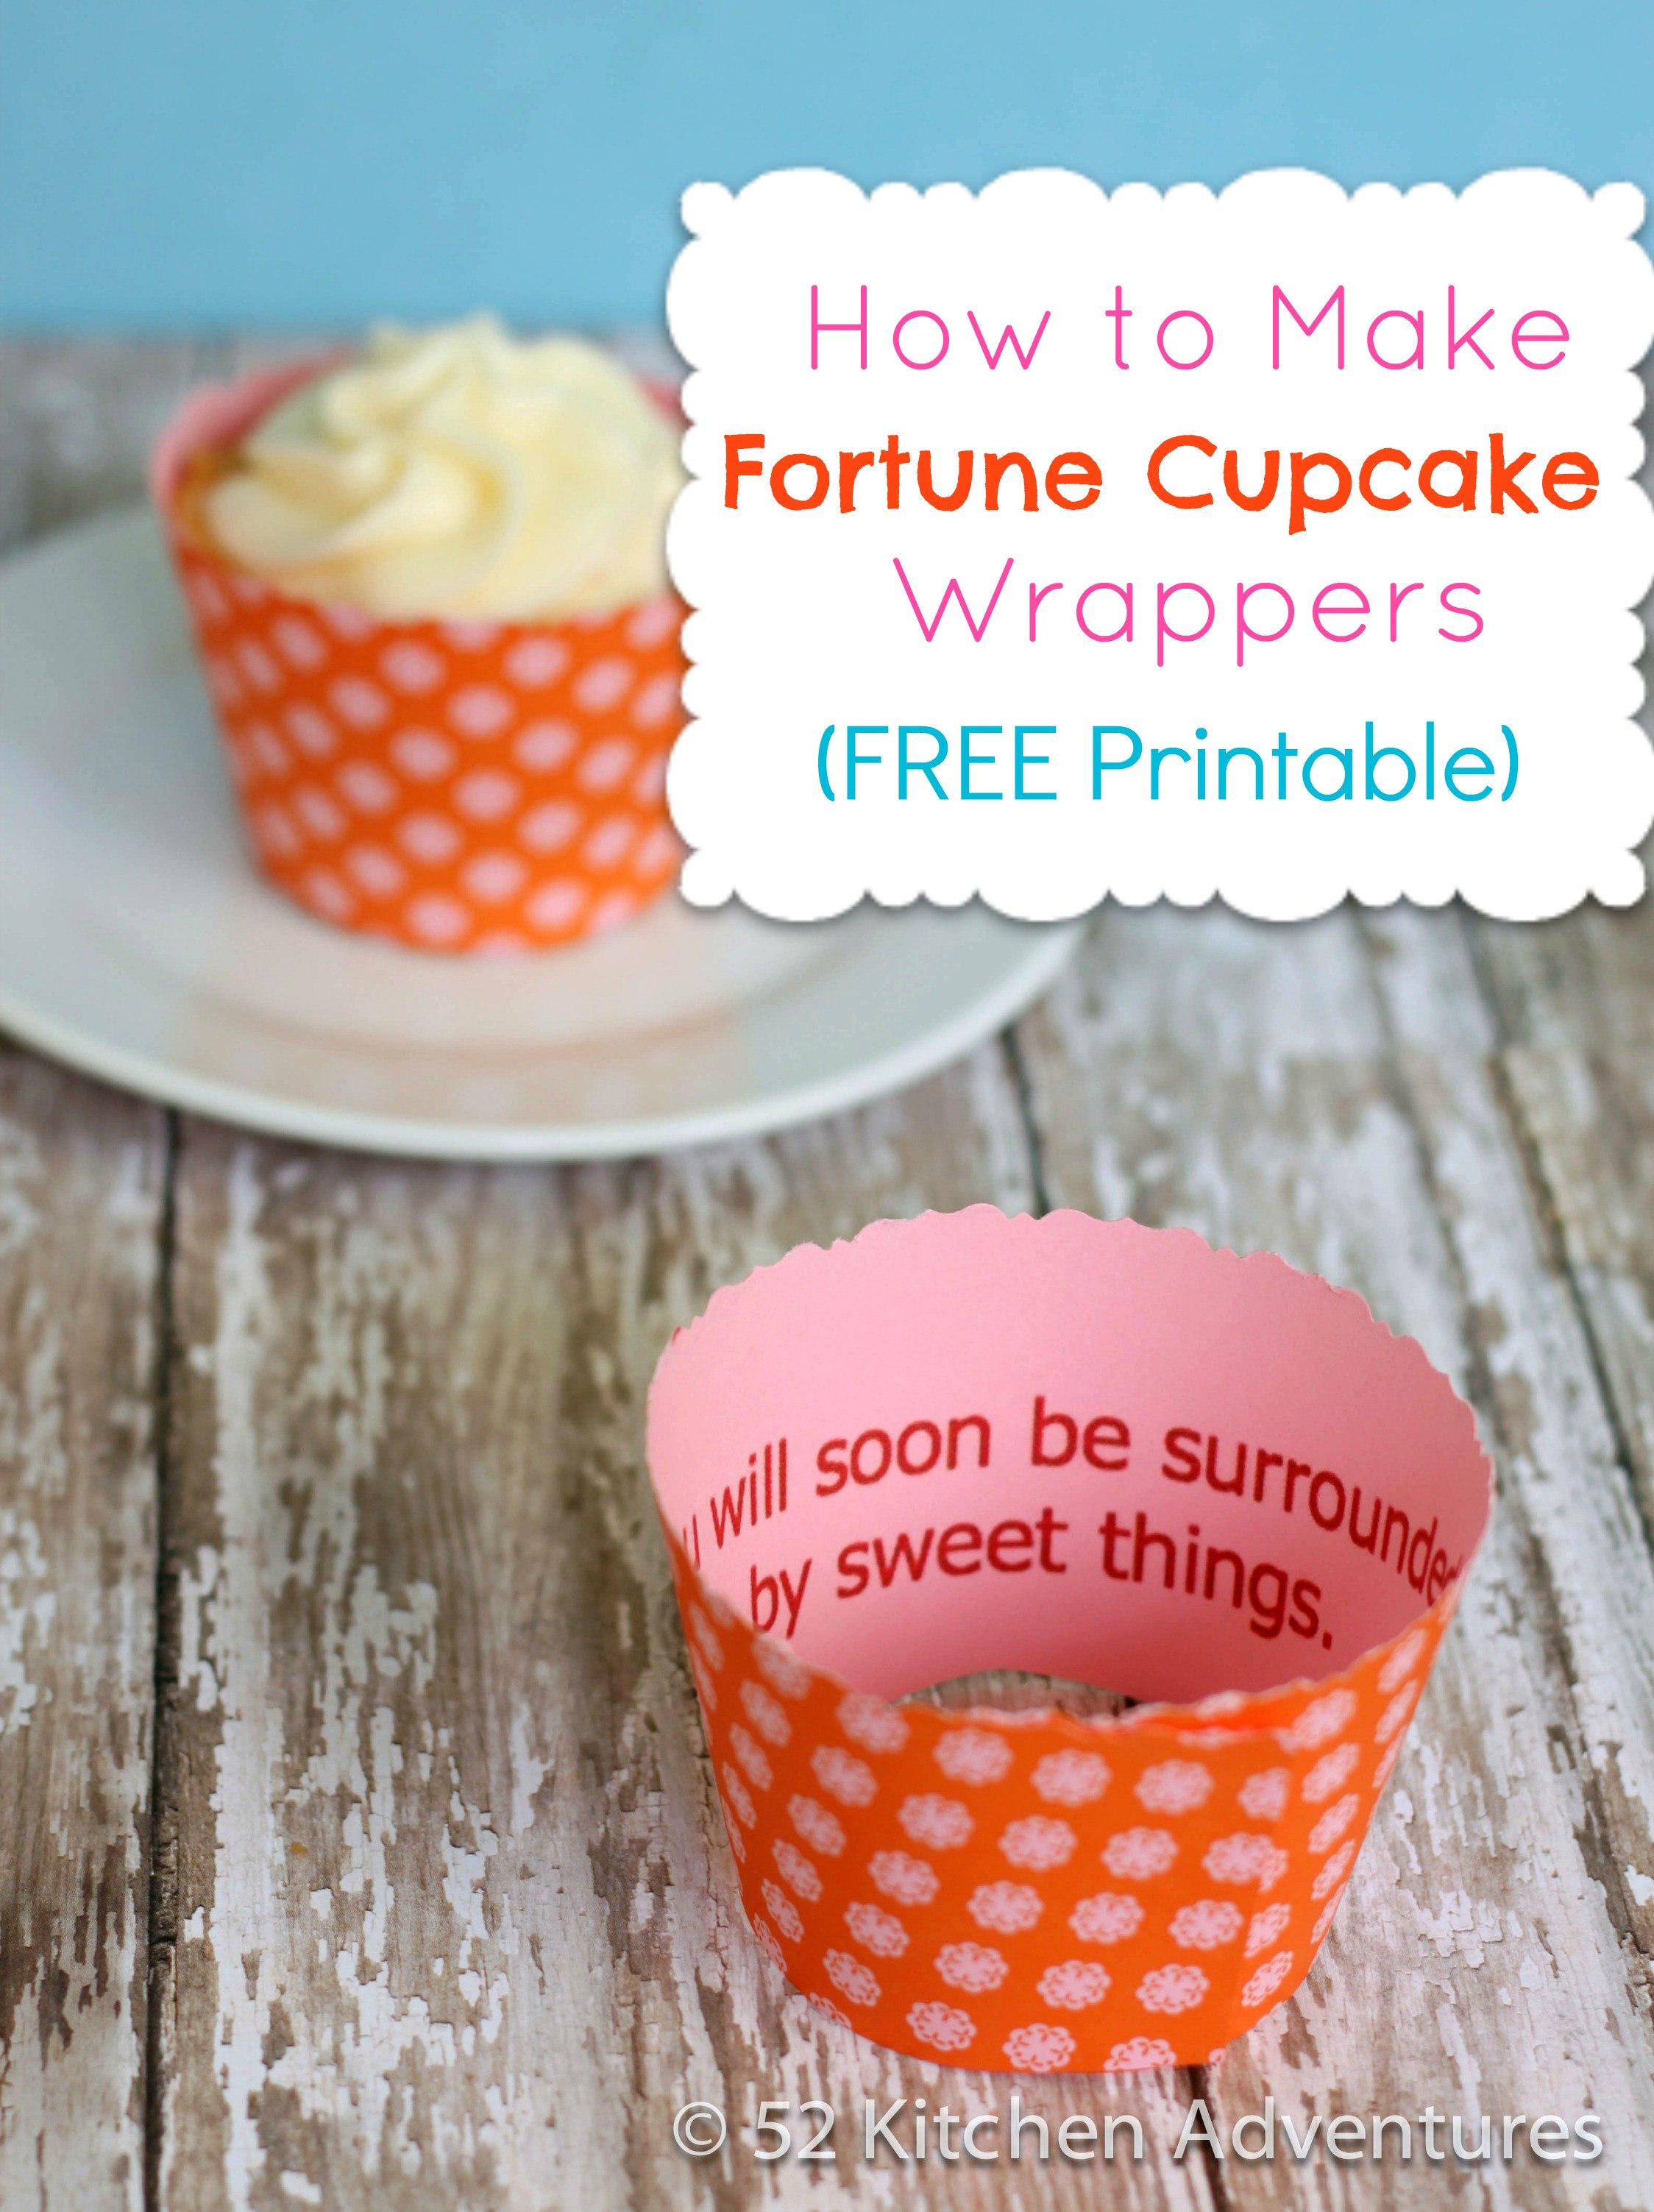 How To Make Cupcakes  How to Make Fortune Cupcakes Free Printable